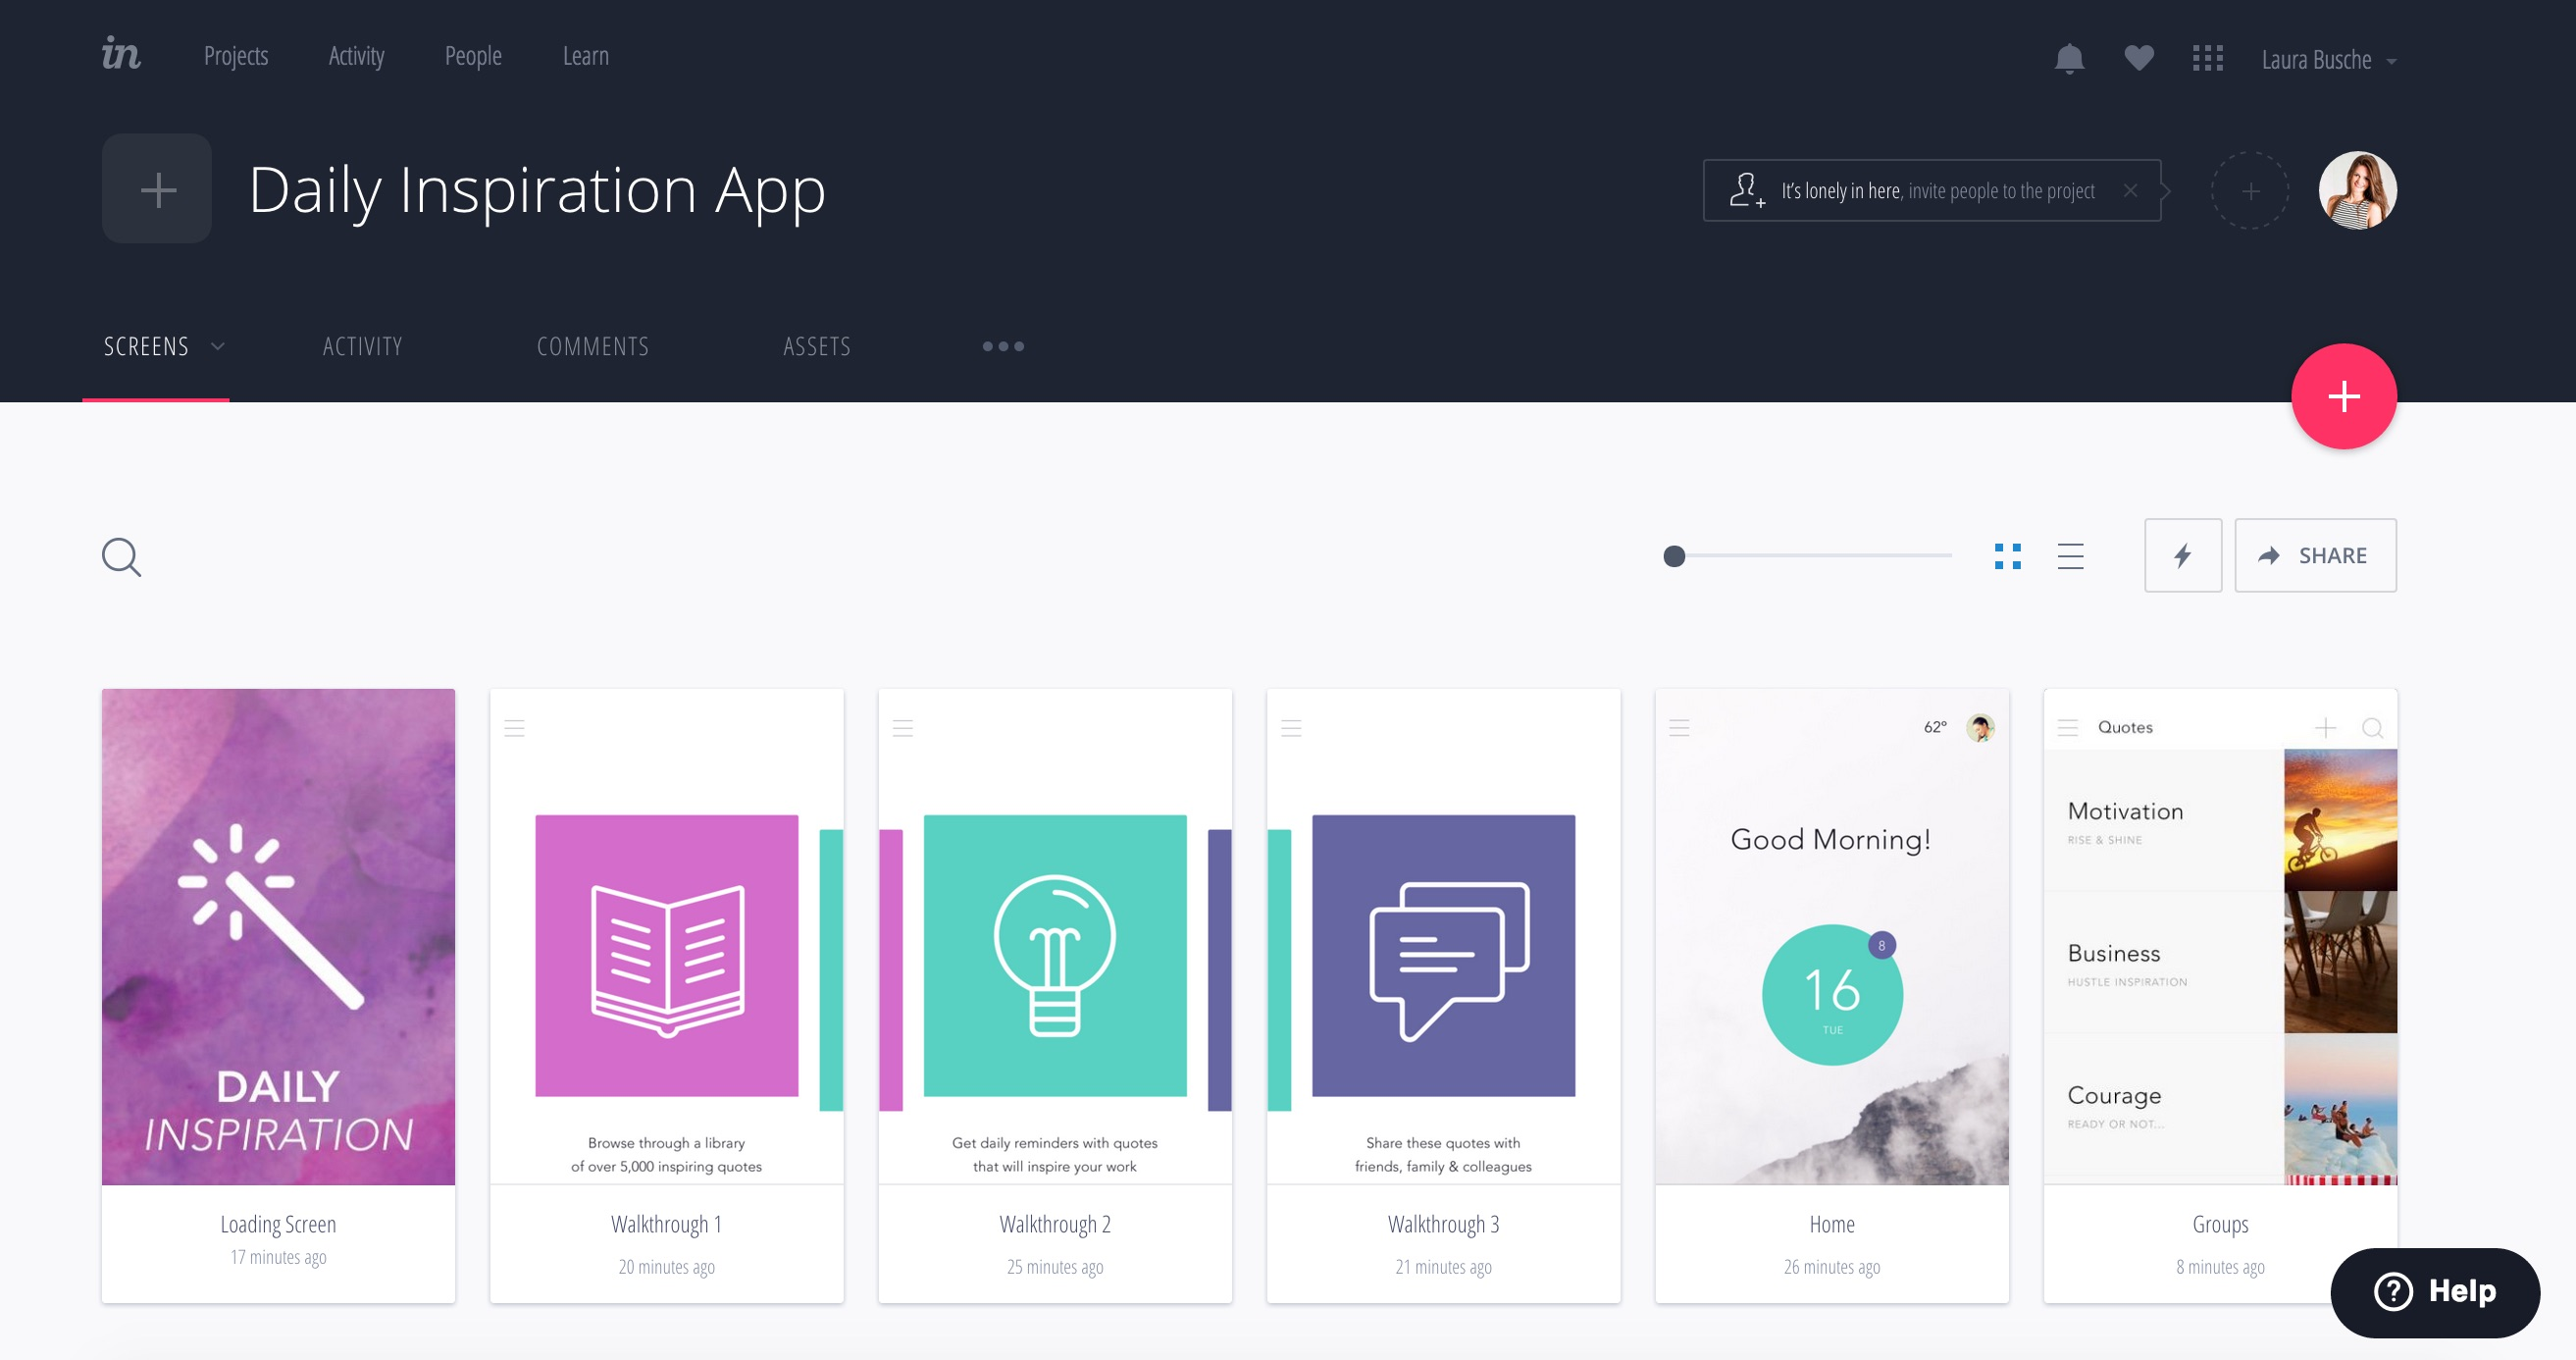 Daily_Inspiration_App_Screens_-_InVision